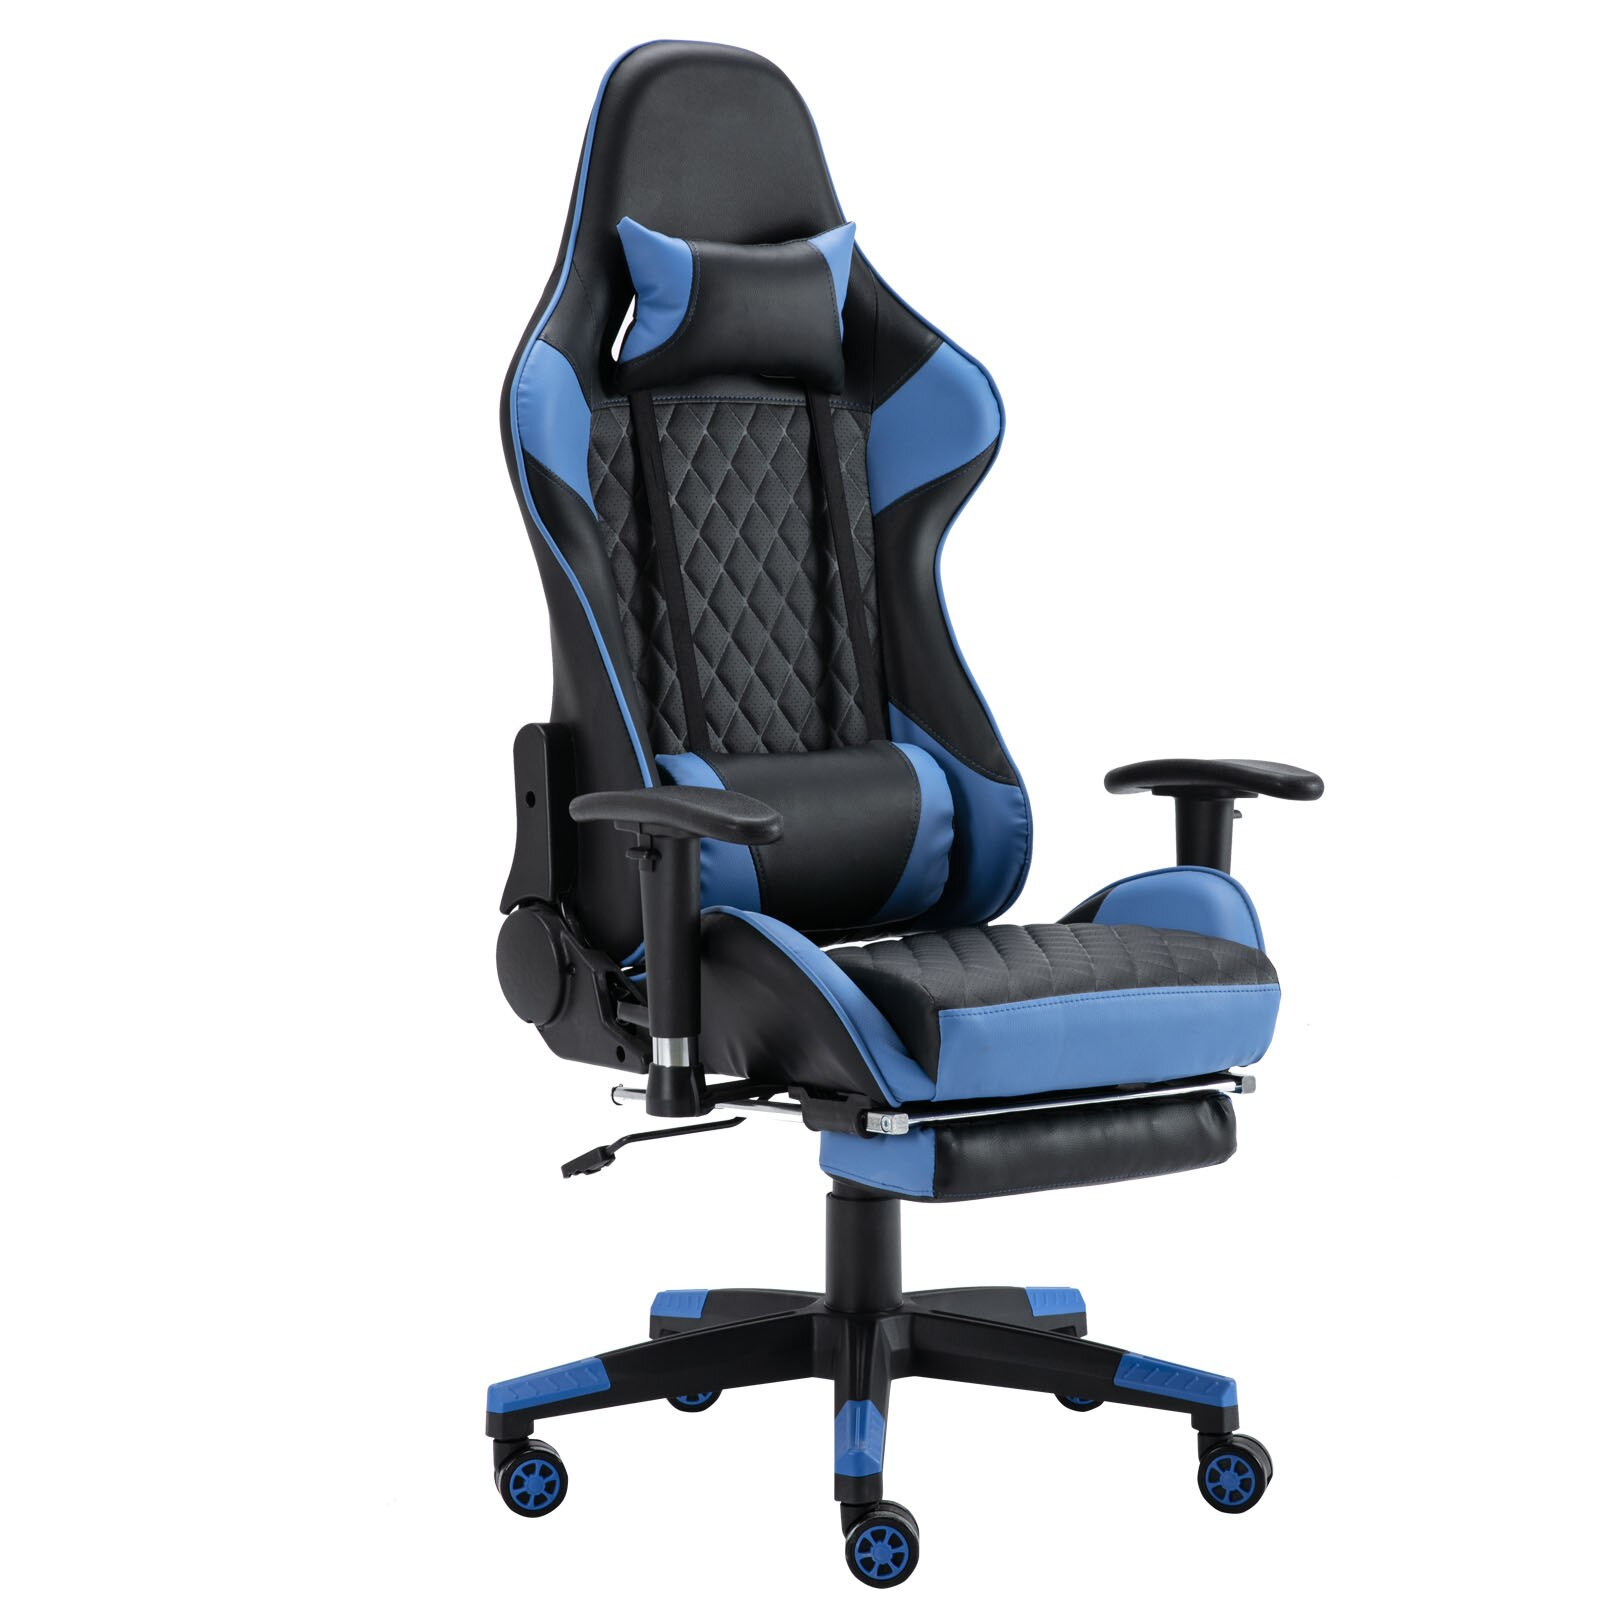 H4a841afa44a141da9e38279423e1f4d4J - Gaming Chair Computer Armchair Adjustable Armrest And Footrest PVC Household Office Chair Ergonomic Computer Gamer Chair